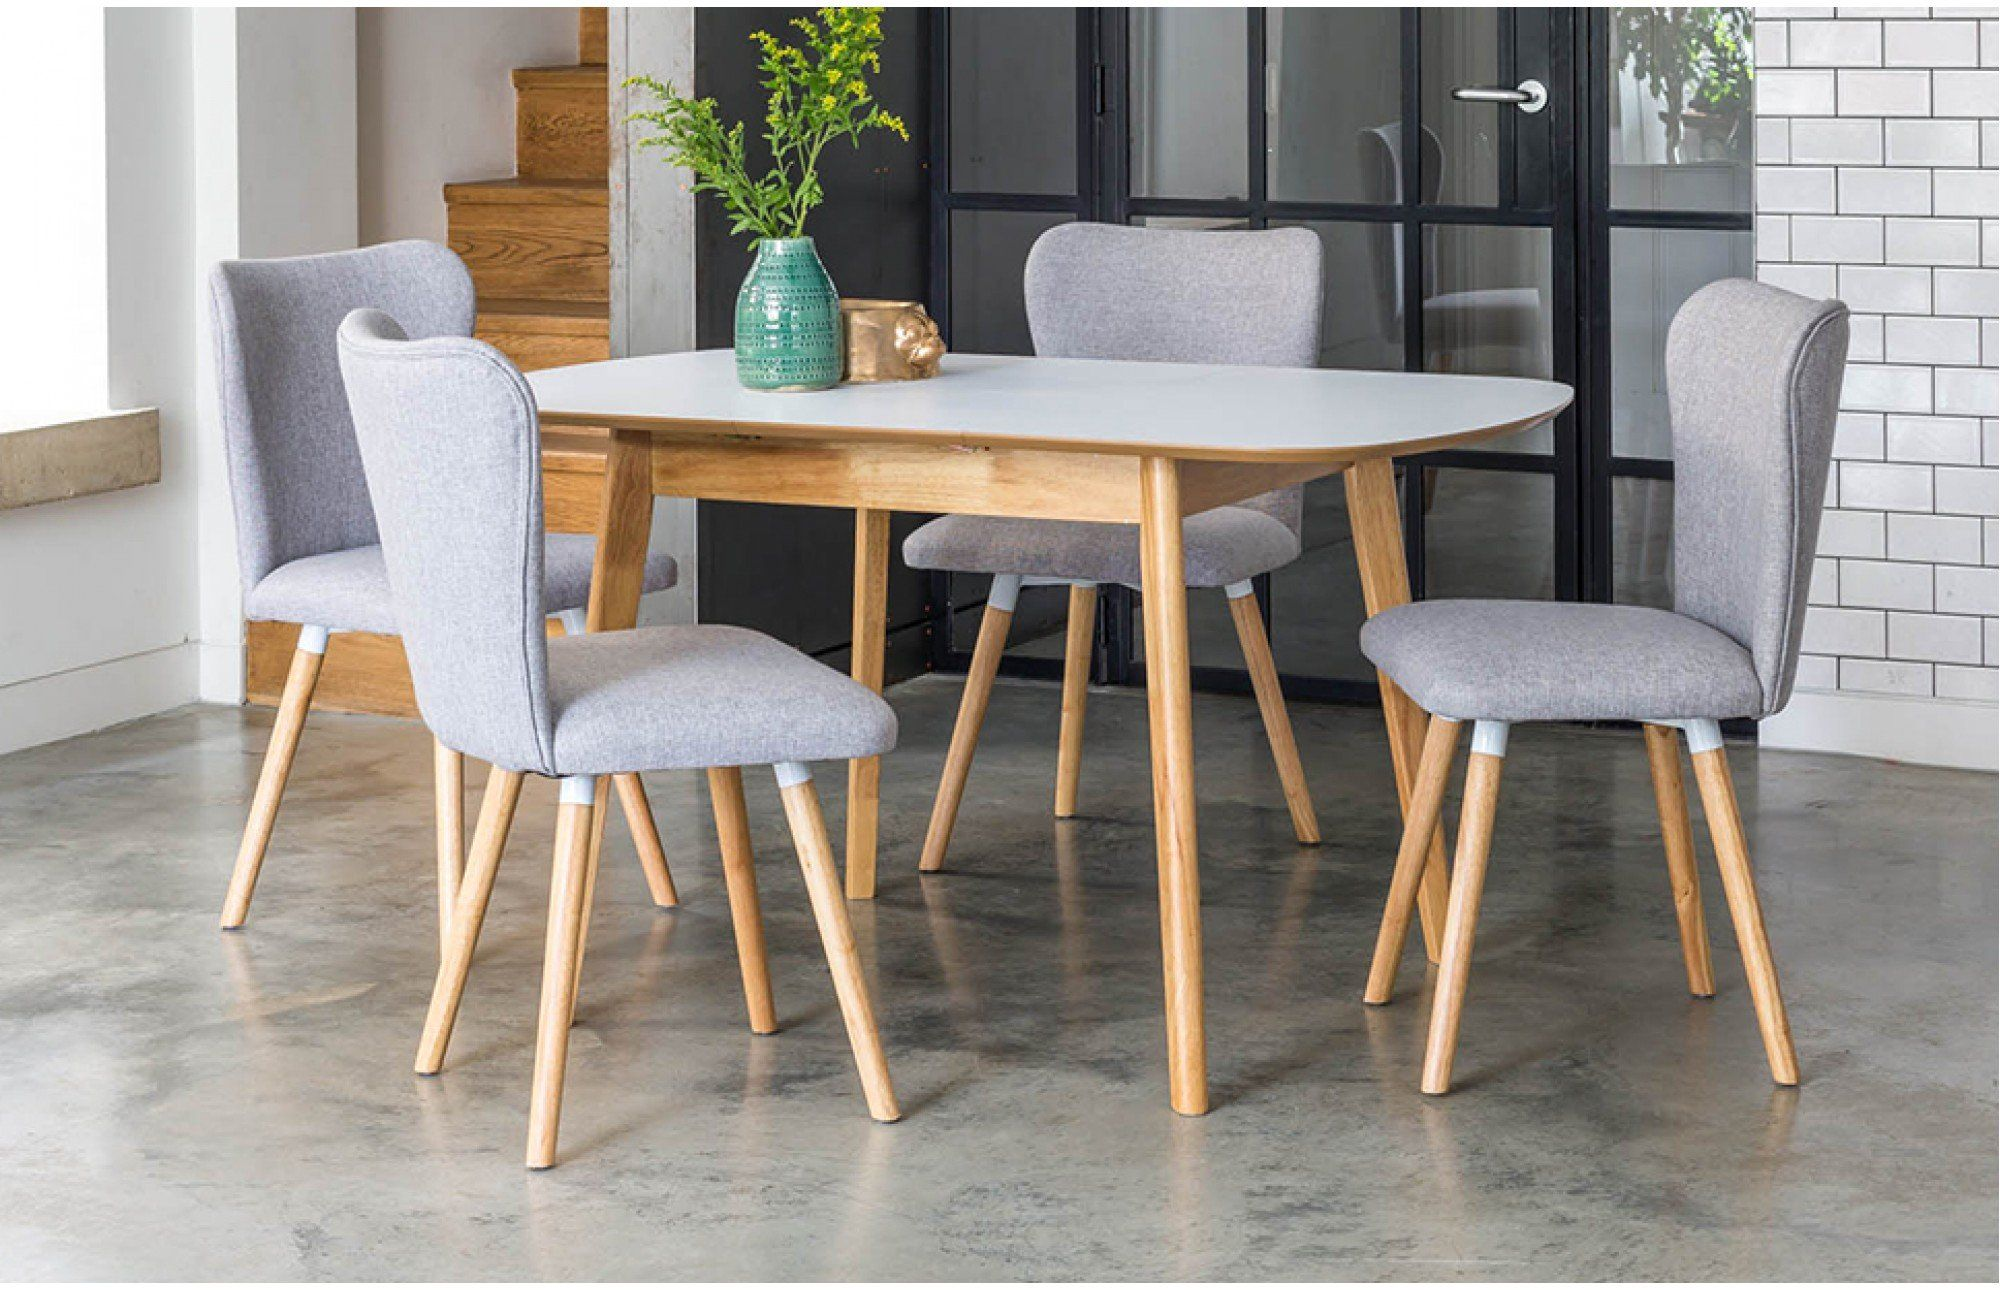 The Compact Dove Extendable 4 Seater Dining Set Is Ideal For